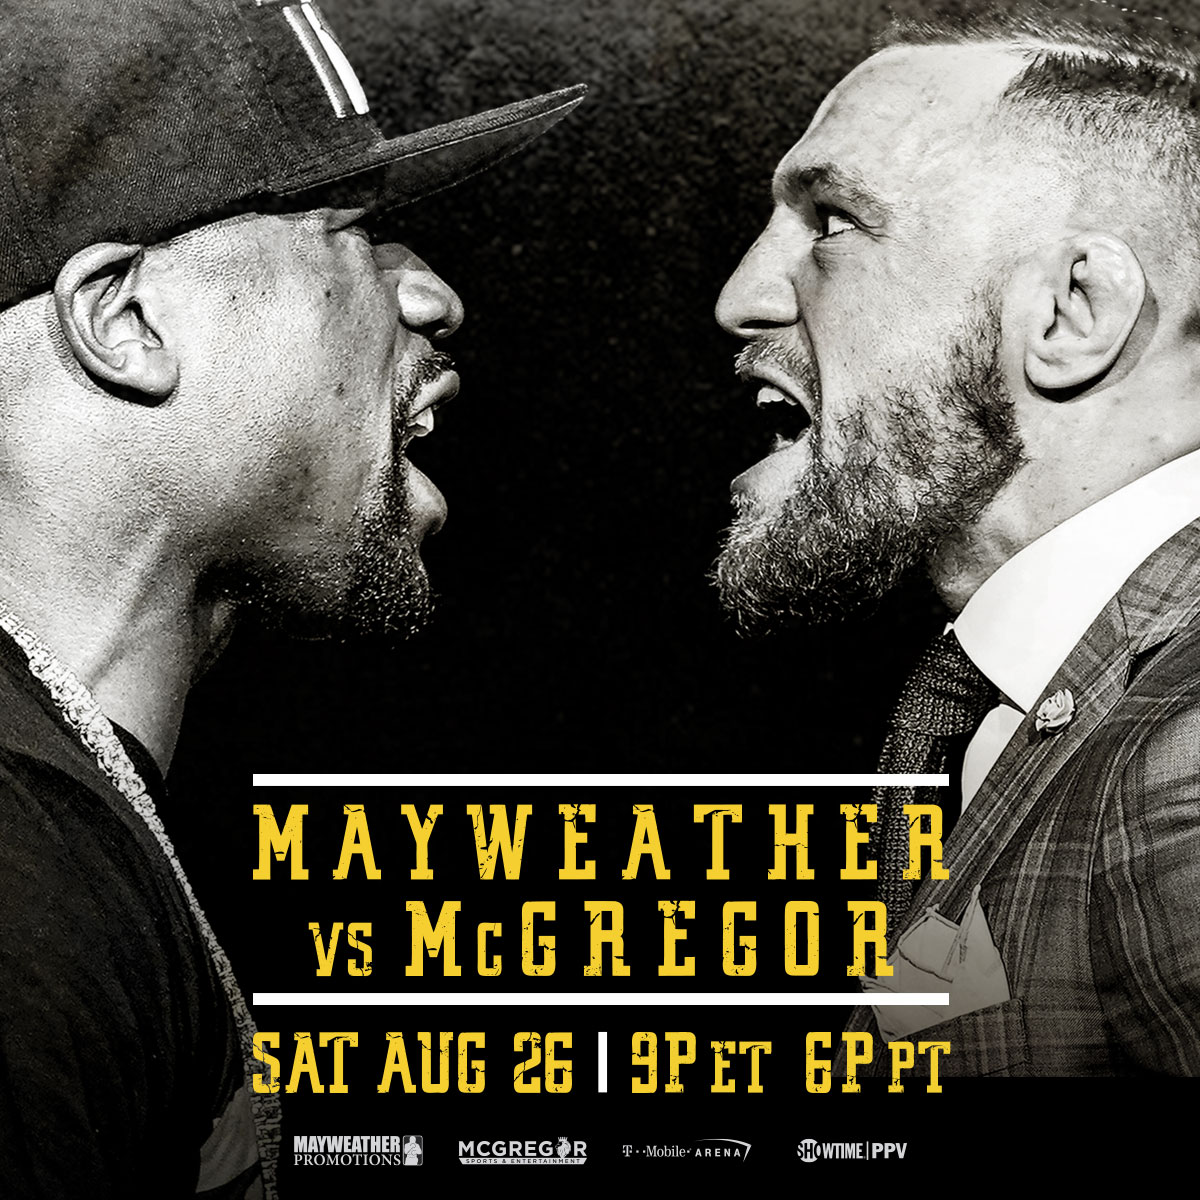 mayweather vs mcgregor date and start